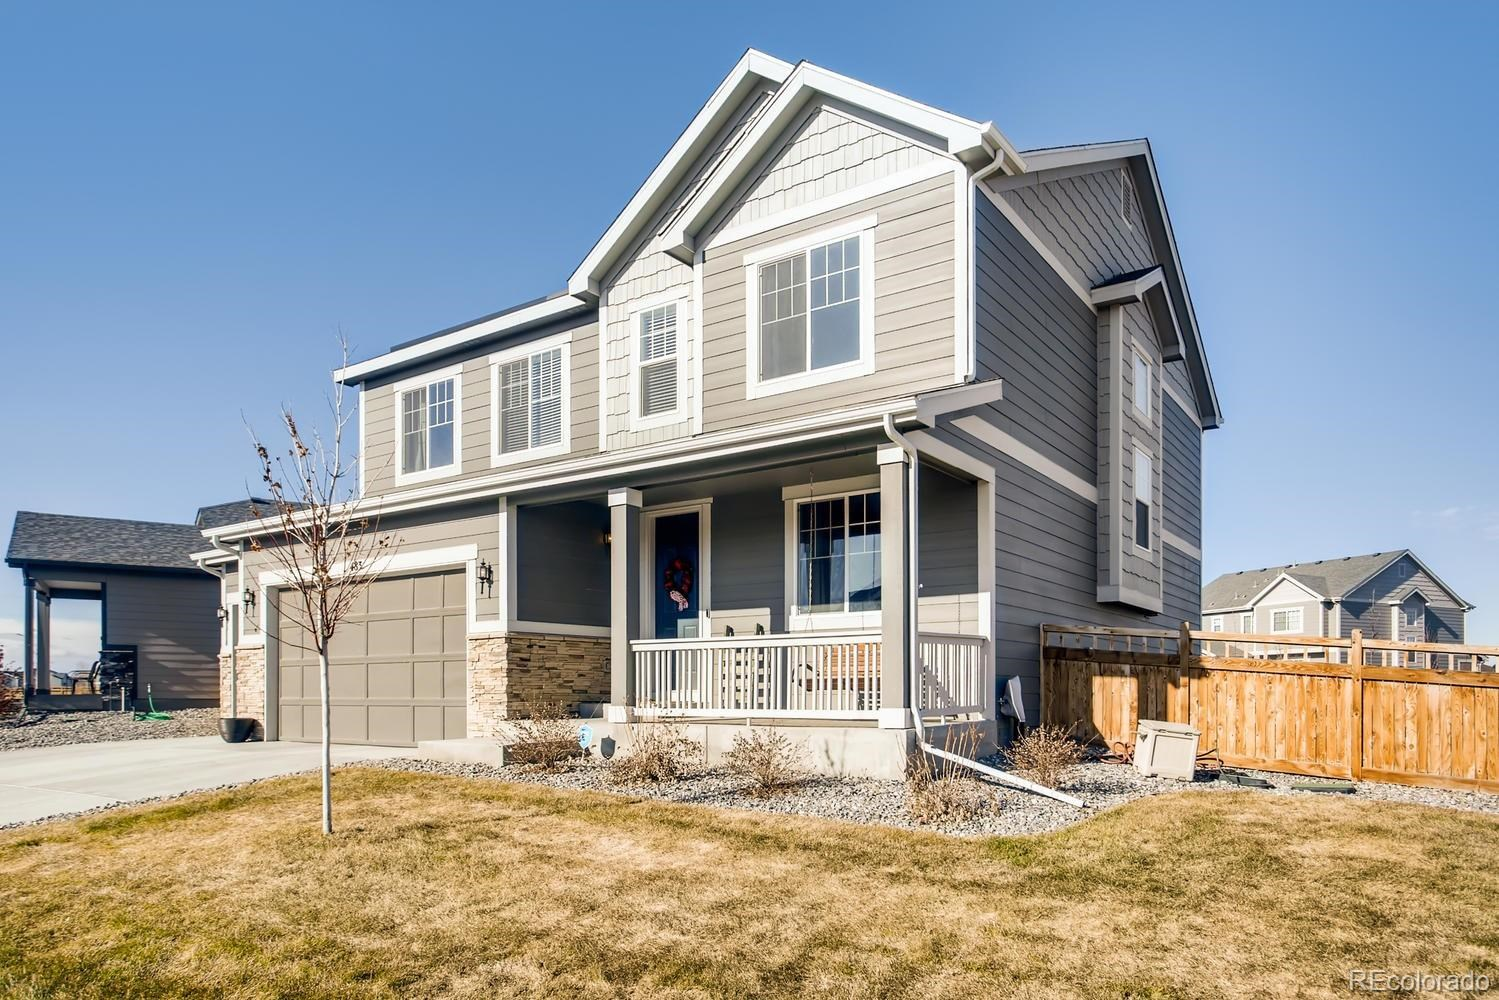 MLS# 4909159 - 1 - 483 Iris Street, Brighton, CO 80601